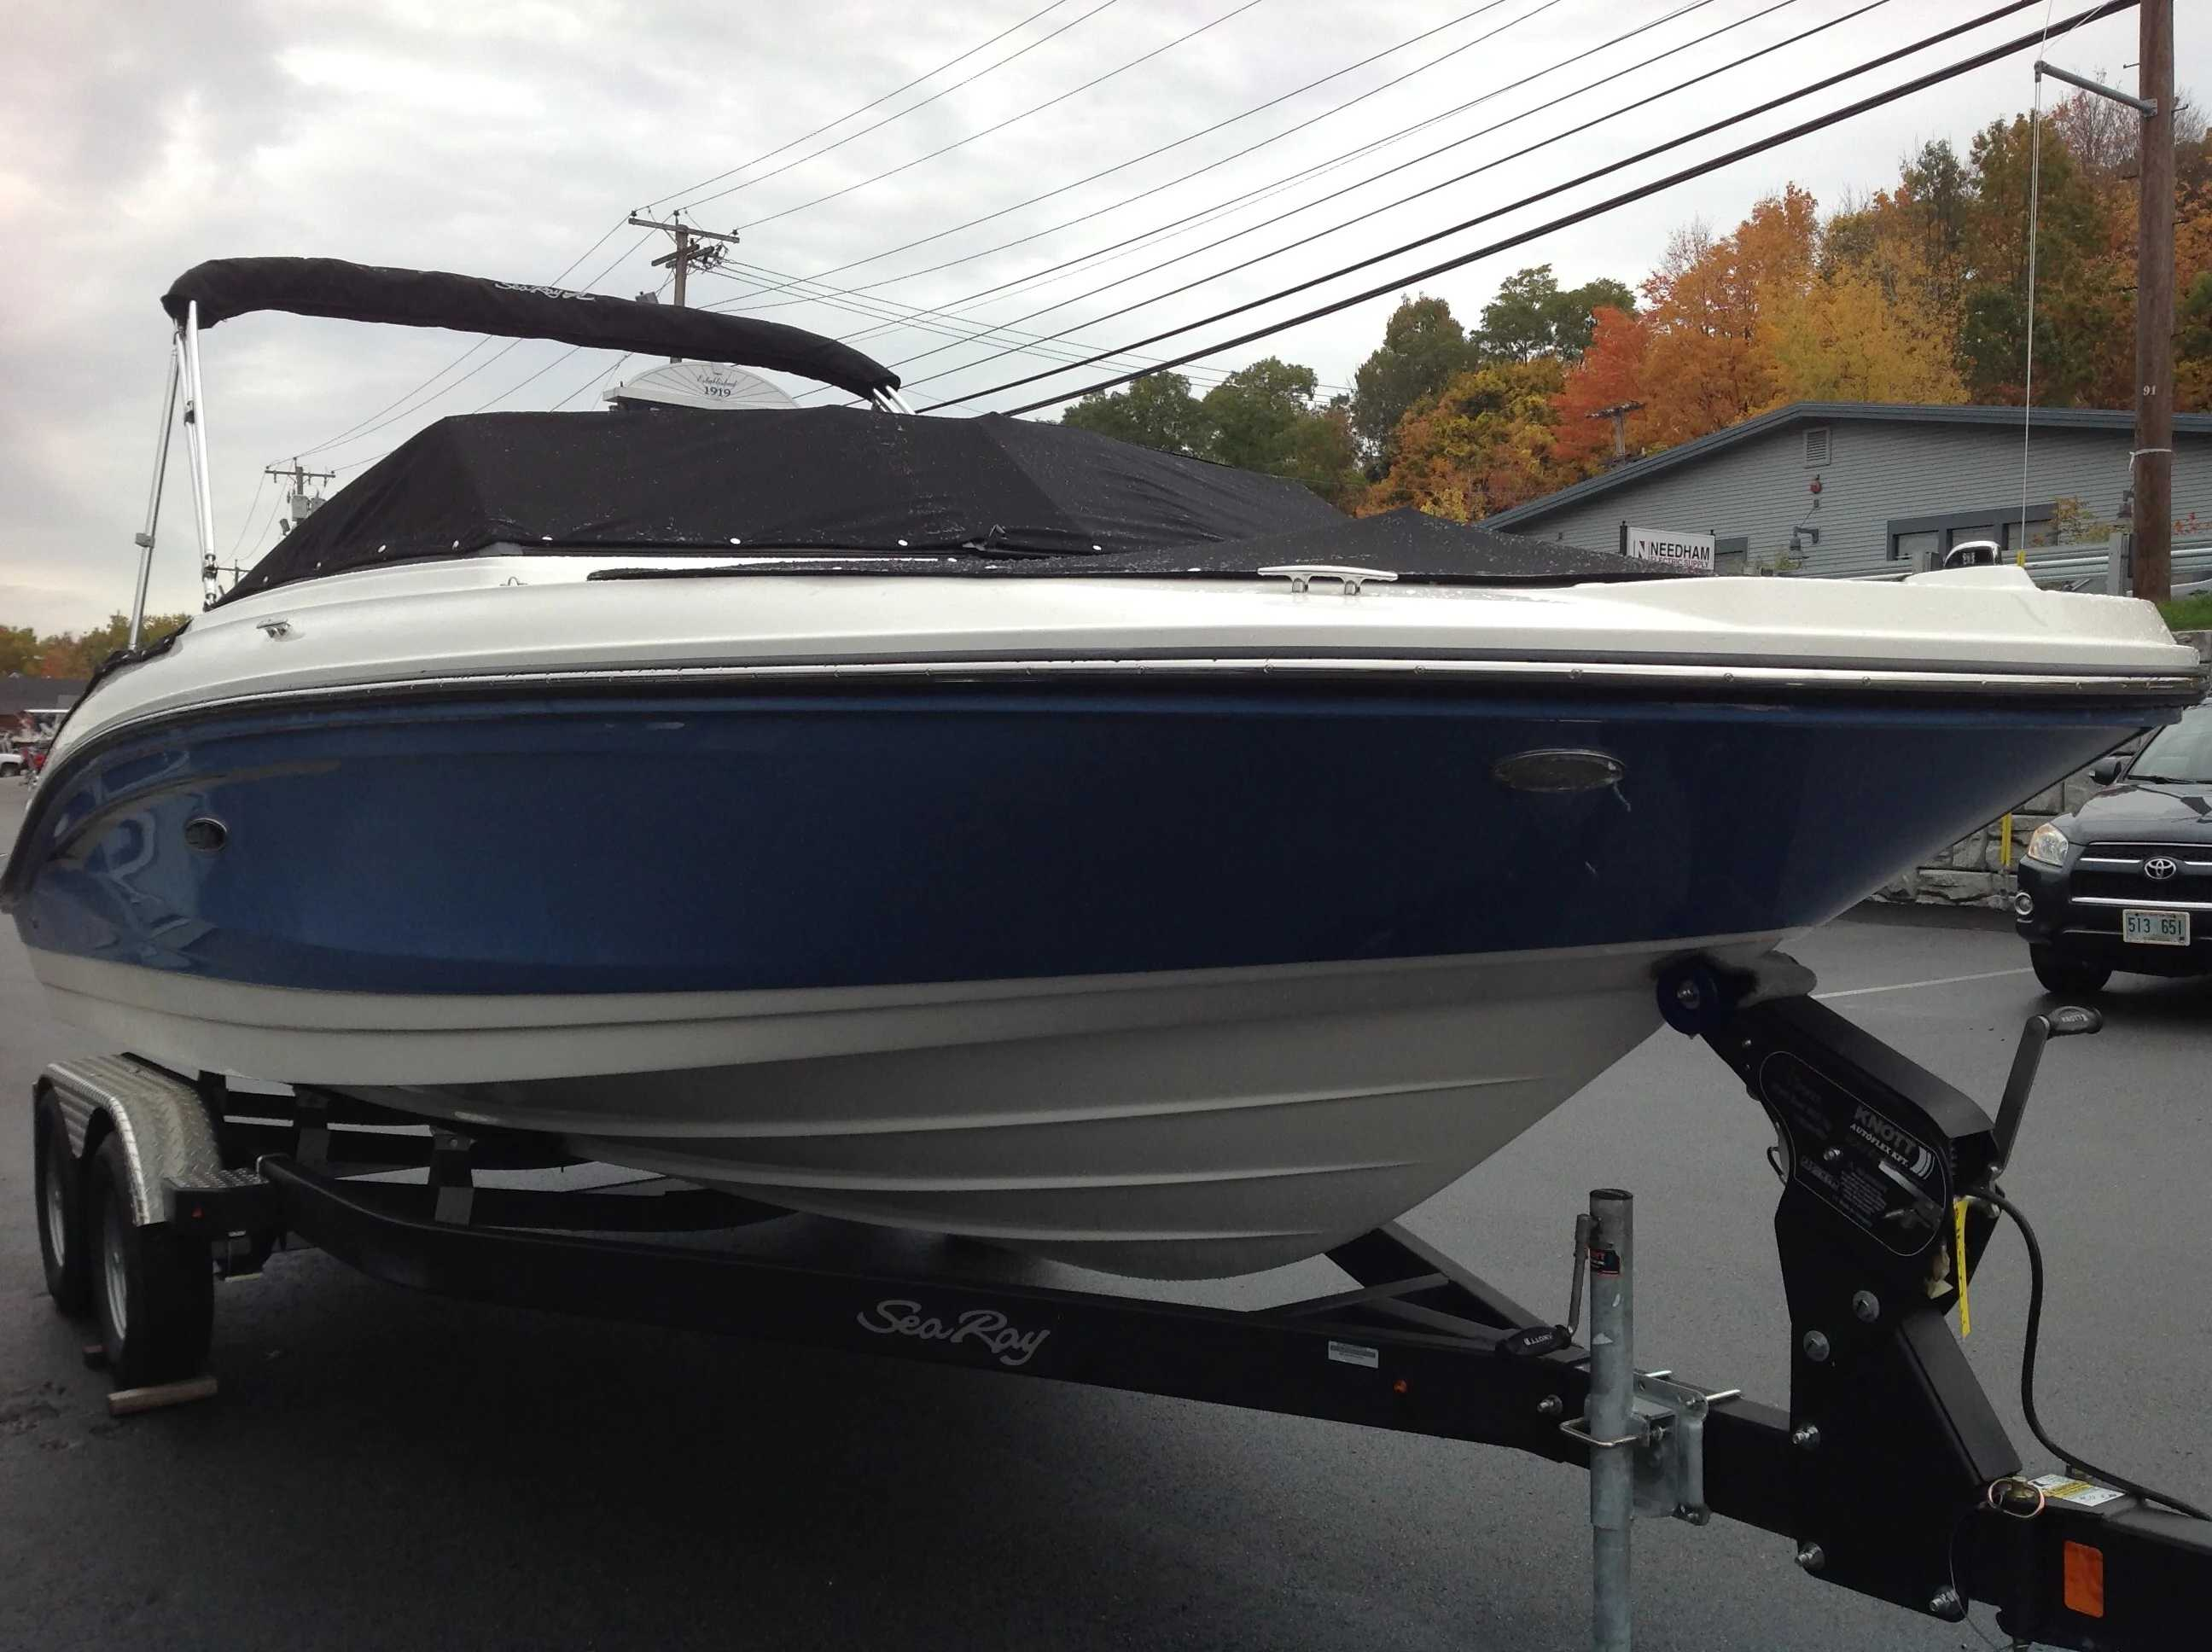 2021 Sea Ray boat for sale, model of the boat is 210 SPX & Image # 3 of 12